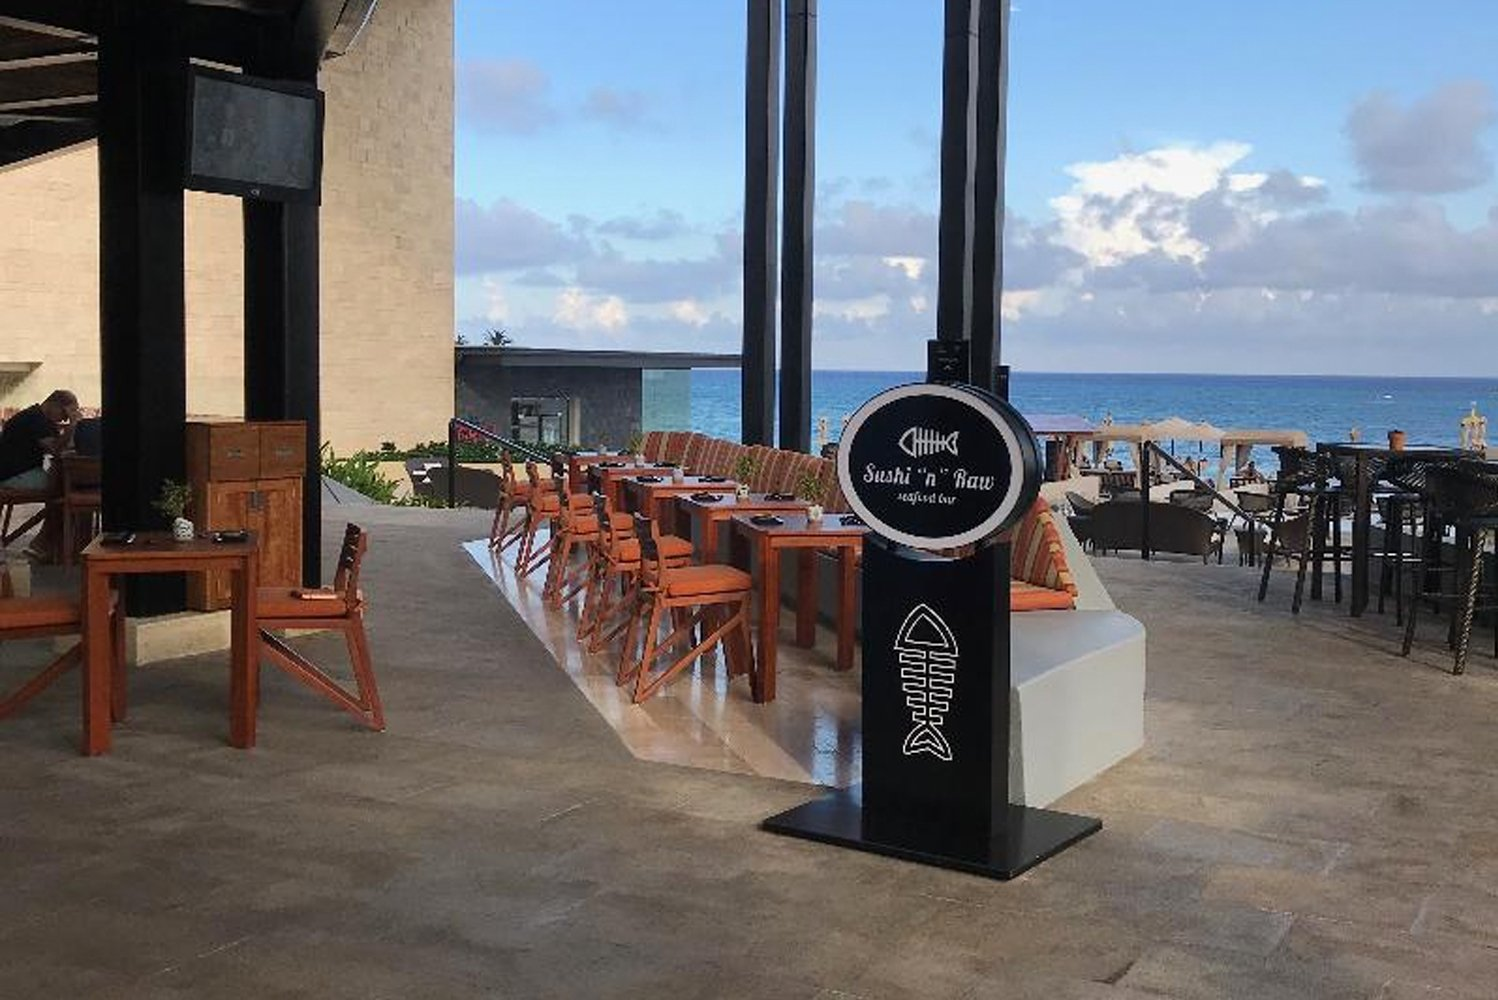 Grand Hyatt Playa del Carmen opened a new dining venue, the Sushi 'n' Raw Seafood bar and restaurant.